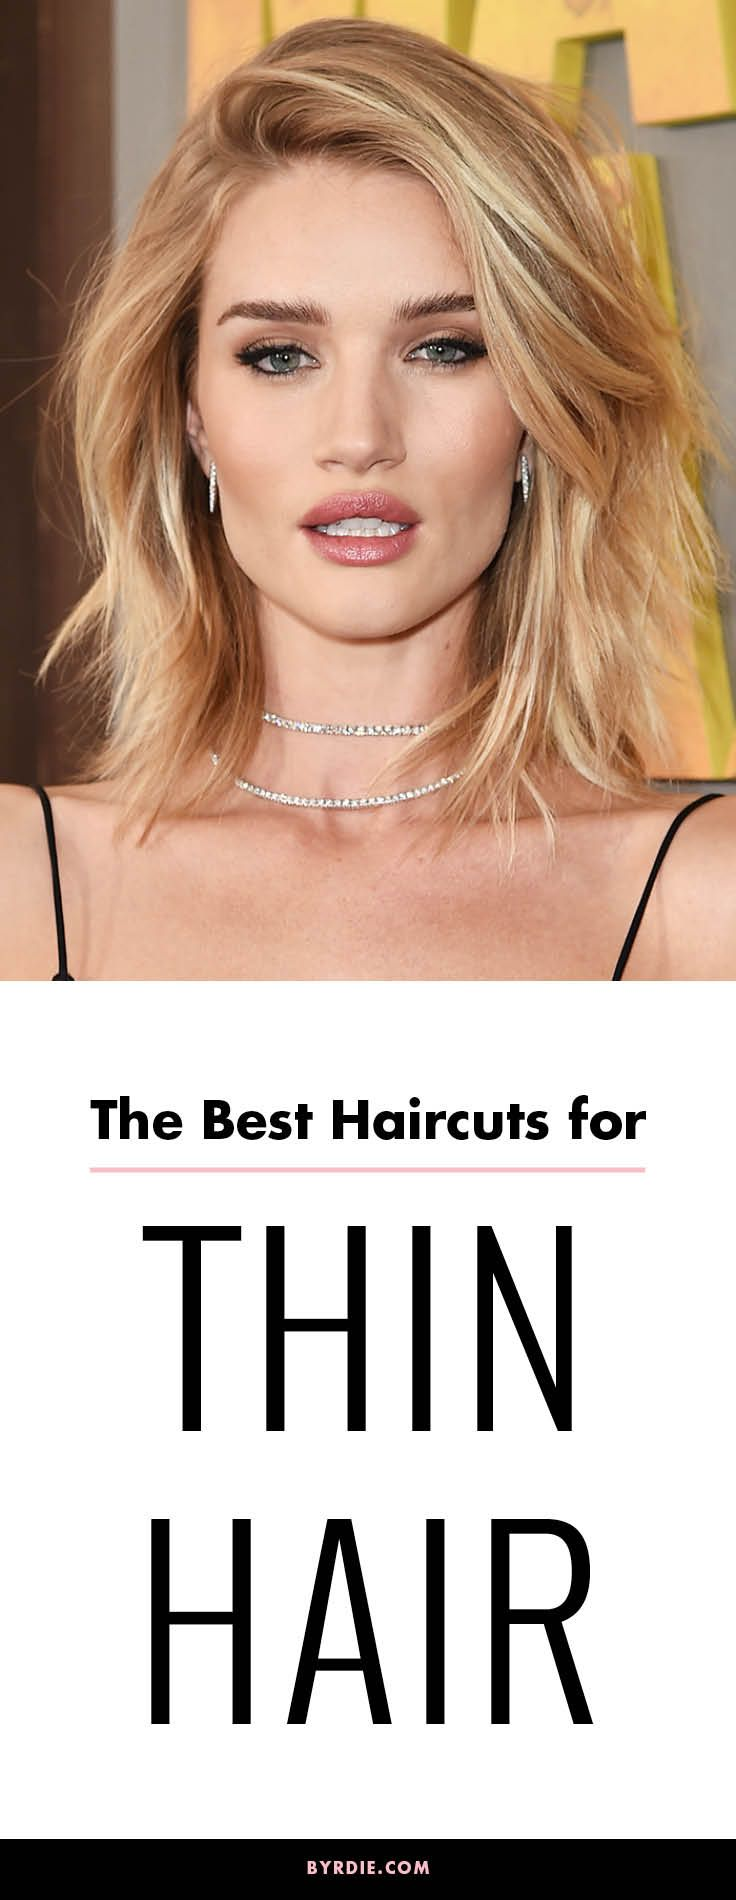 Its Official These Are the AllTime Best Haircuts for